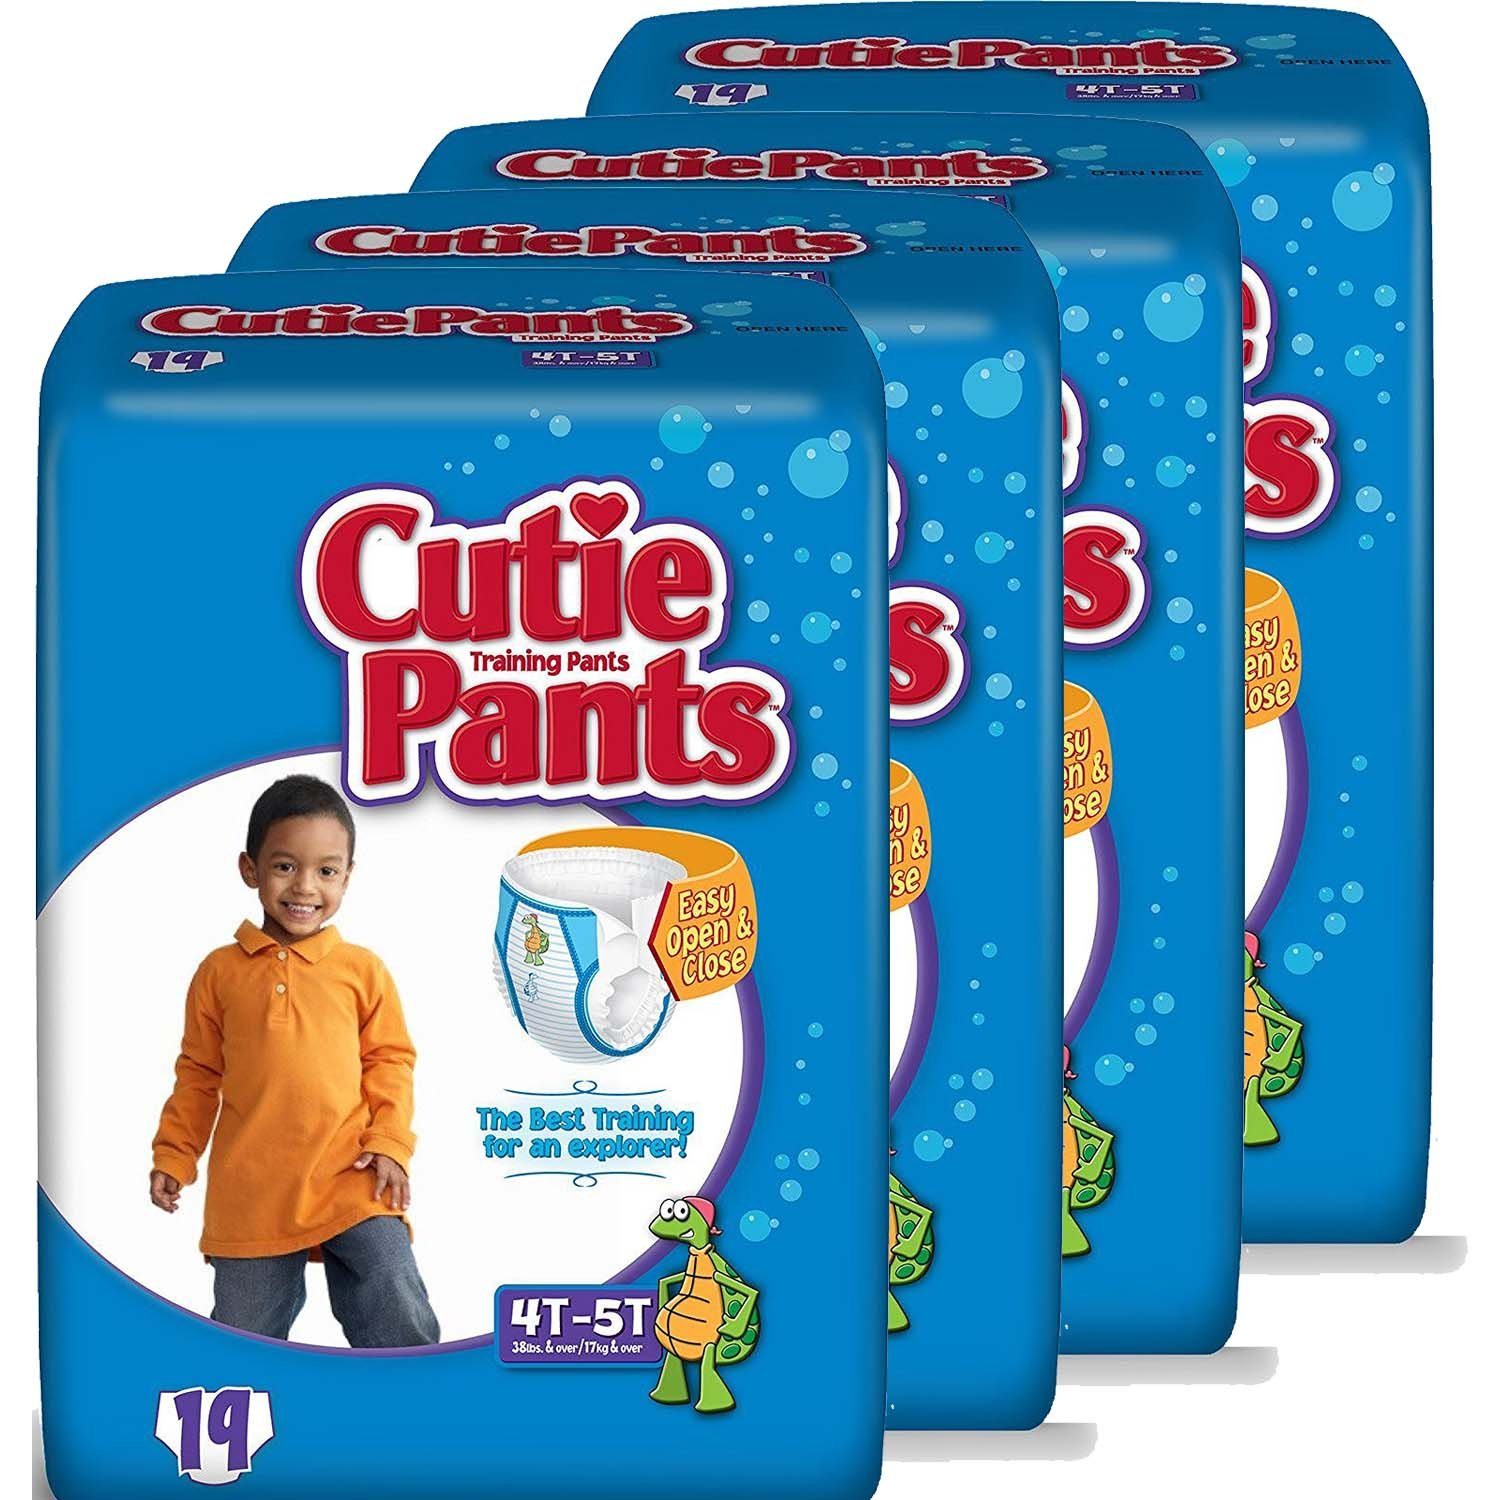 Cuties Toddler Training Pants for Boys, Size 4T-5T, 19-Count, Pack of 4